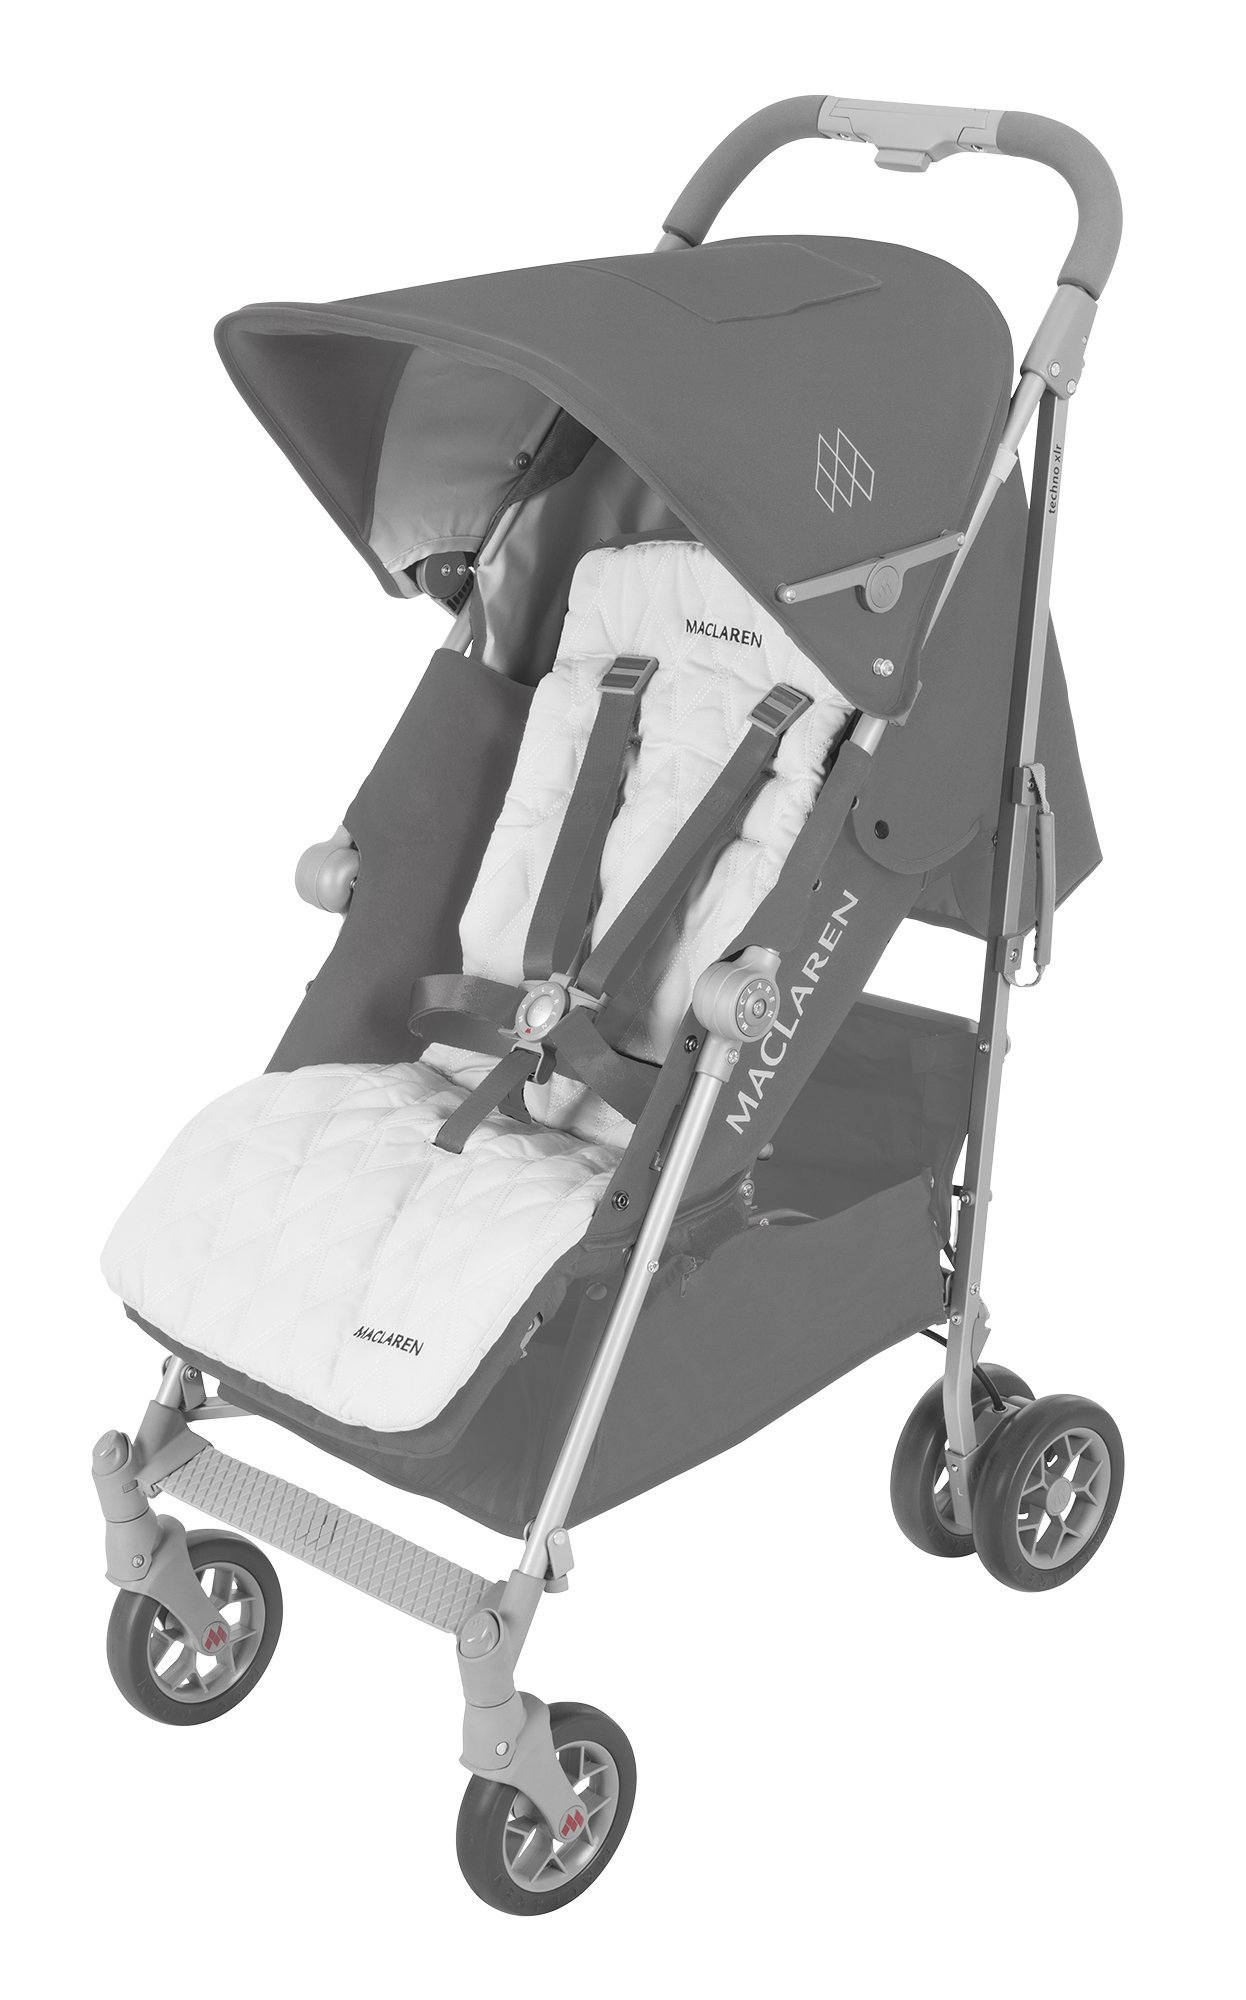 Maclaren Techno XLR arc Travel System Stroller Maclaren Basic weight of 6.7kg/14.8lb; ideal for new-borns and children up to 25kg/55lb (usa 65lb) Maclaren is the only brand to offer a sovereign lifetime warranty Extendable upf 50+ sun canopy and built-in sun visor 1